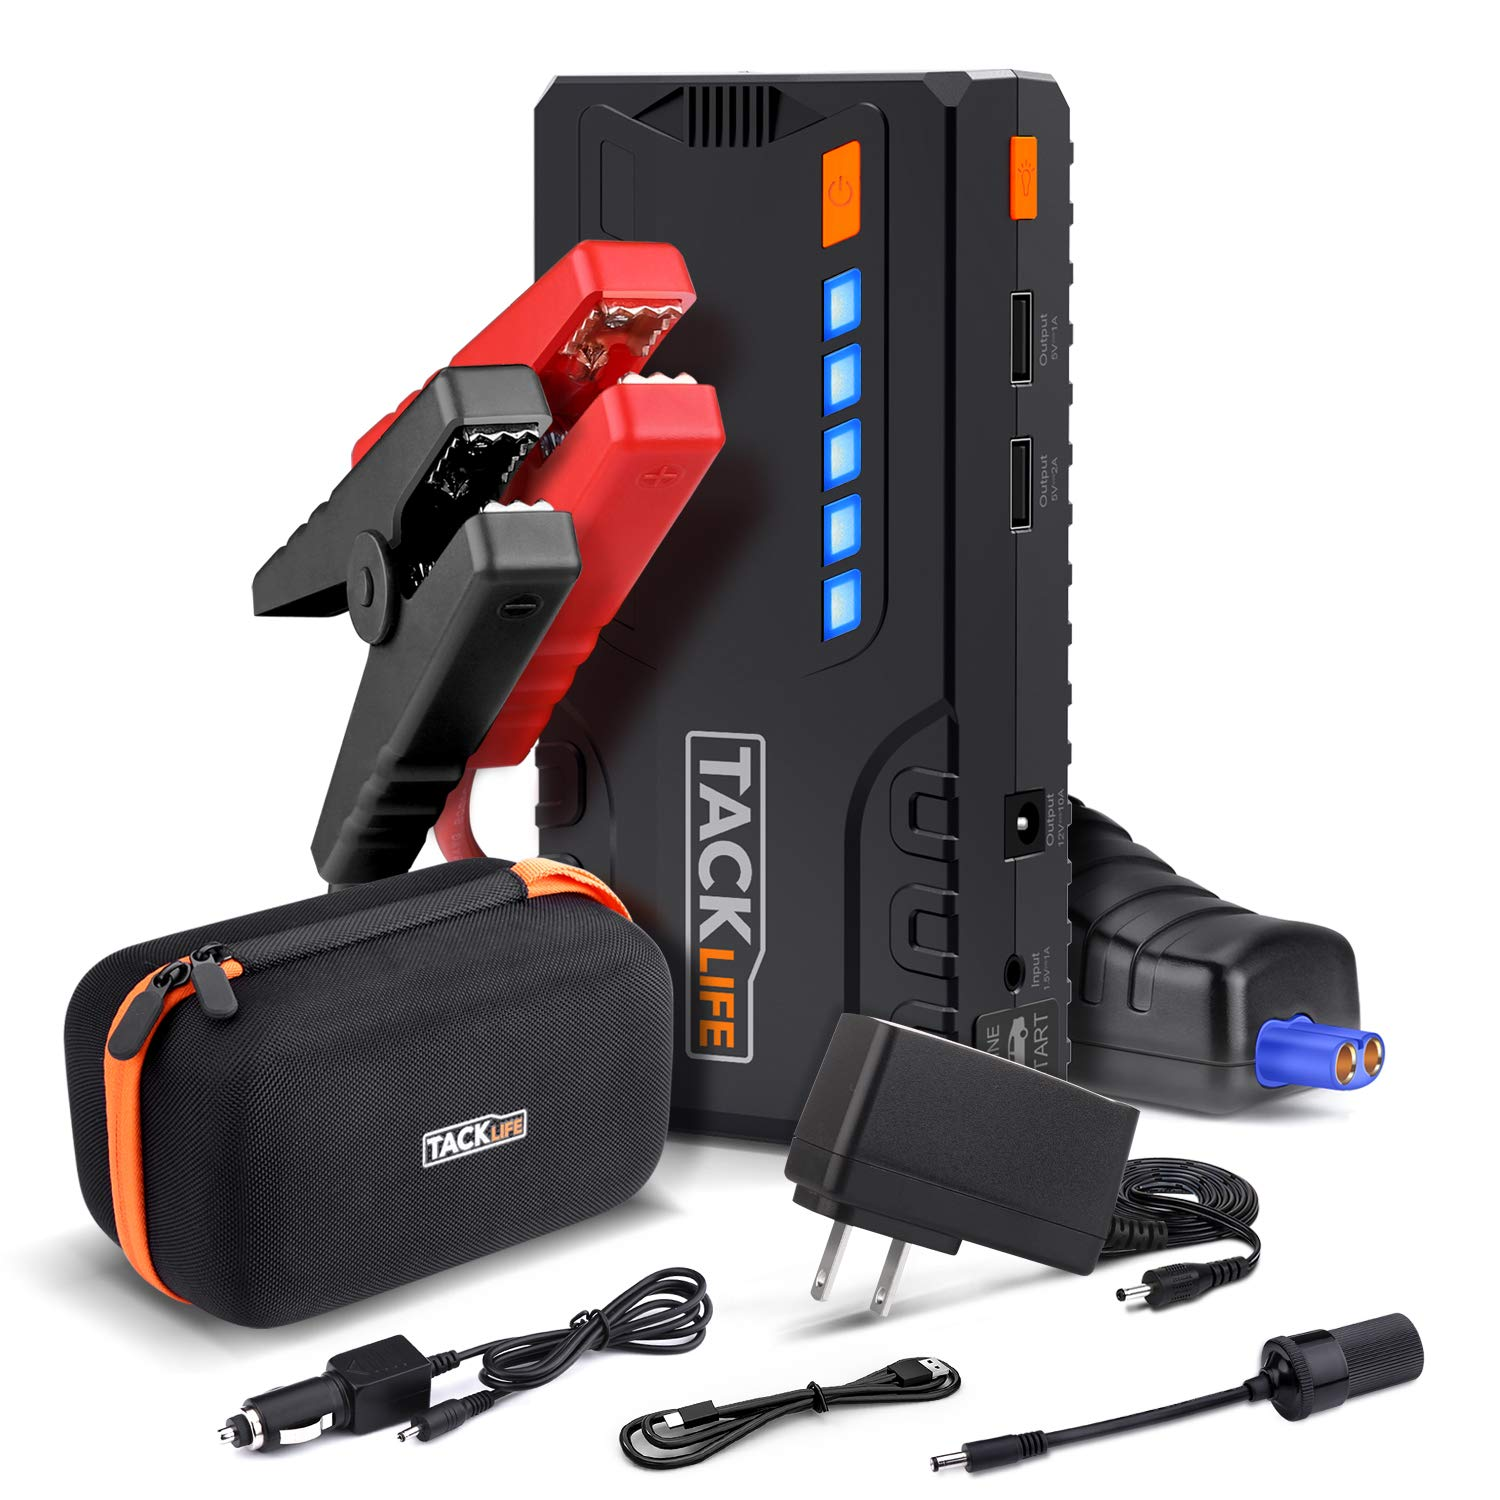 TACKLIFE T6 600A Peak 16500mAh SuperSafe Car Jump Starter (up to 7.0L Gas, 5.5L Diesel Engine) with Long Standby, Quick Charge, 12V Auto Battery Booster, Portable Power Pack for Cars, Trucks, SUV by TACKLIFE